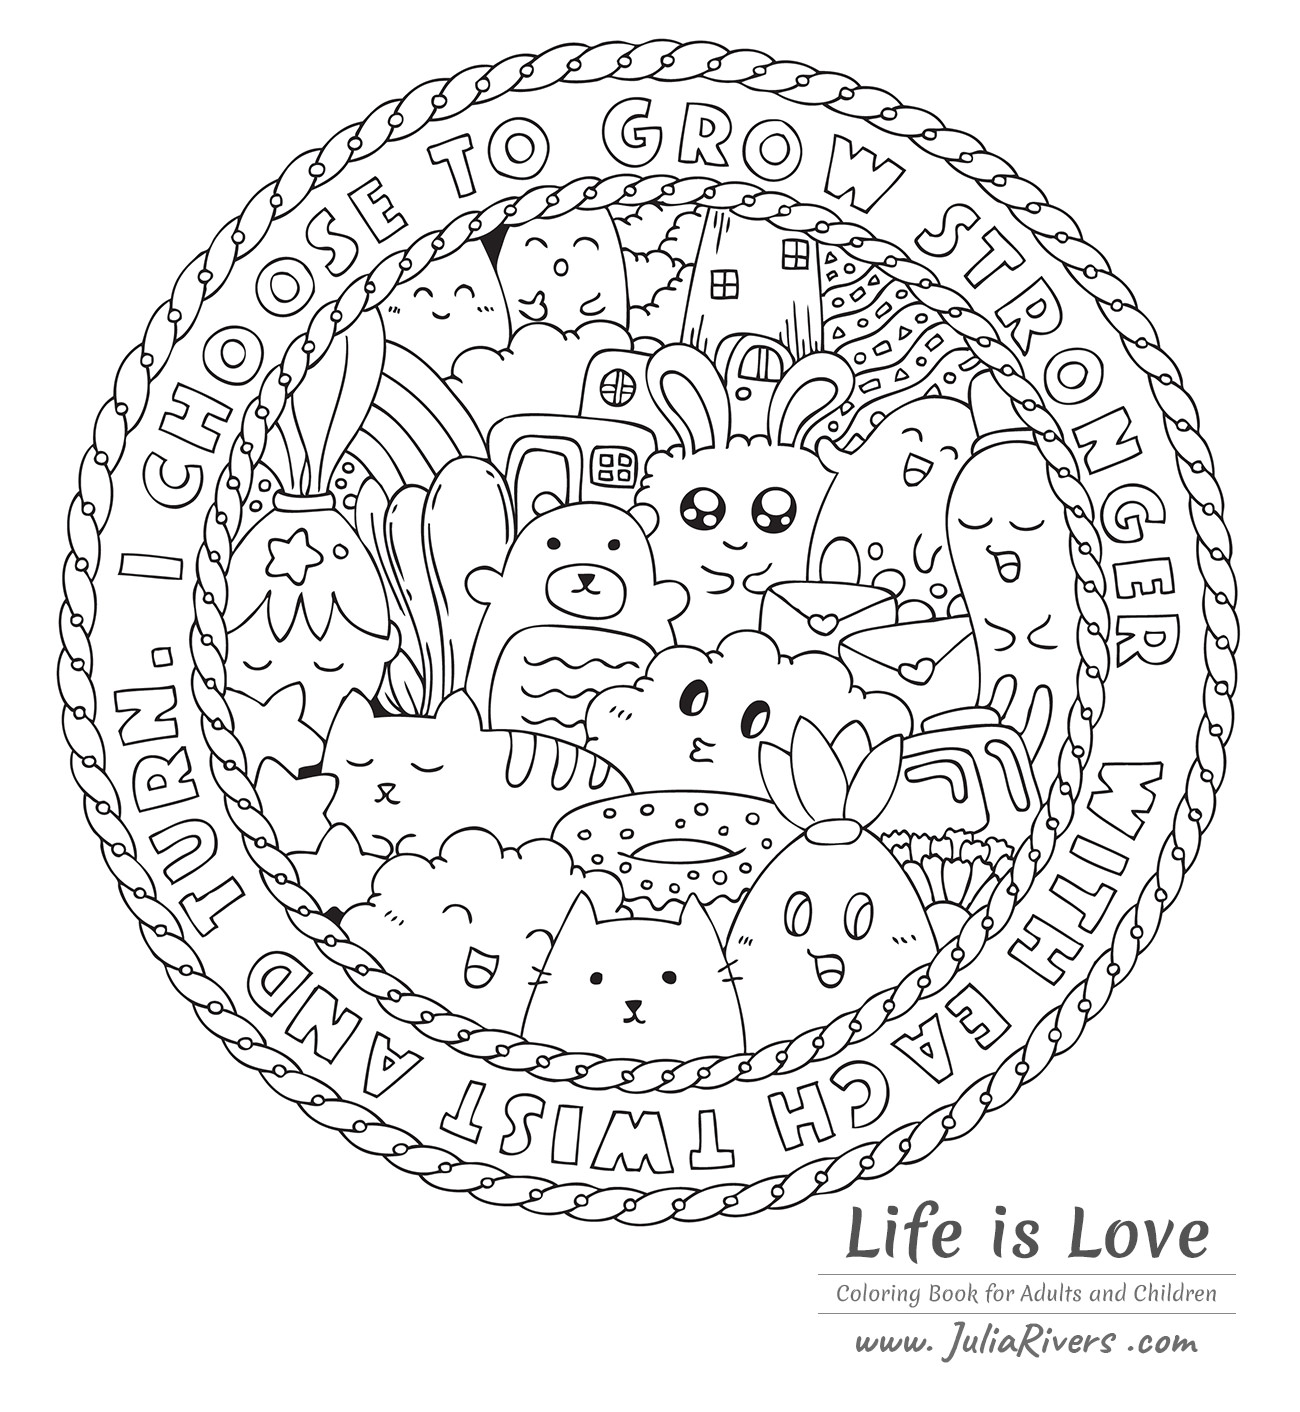 Free Pusheen coloring page to download